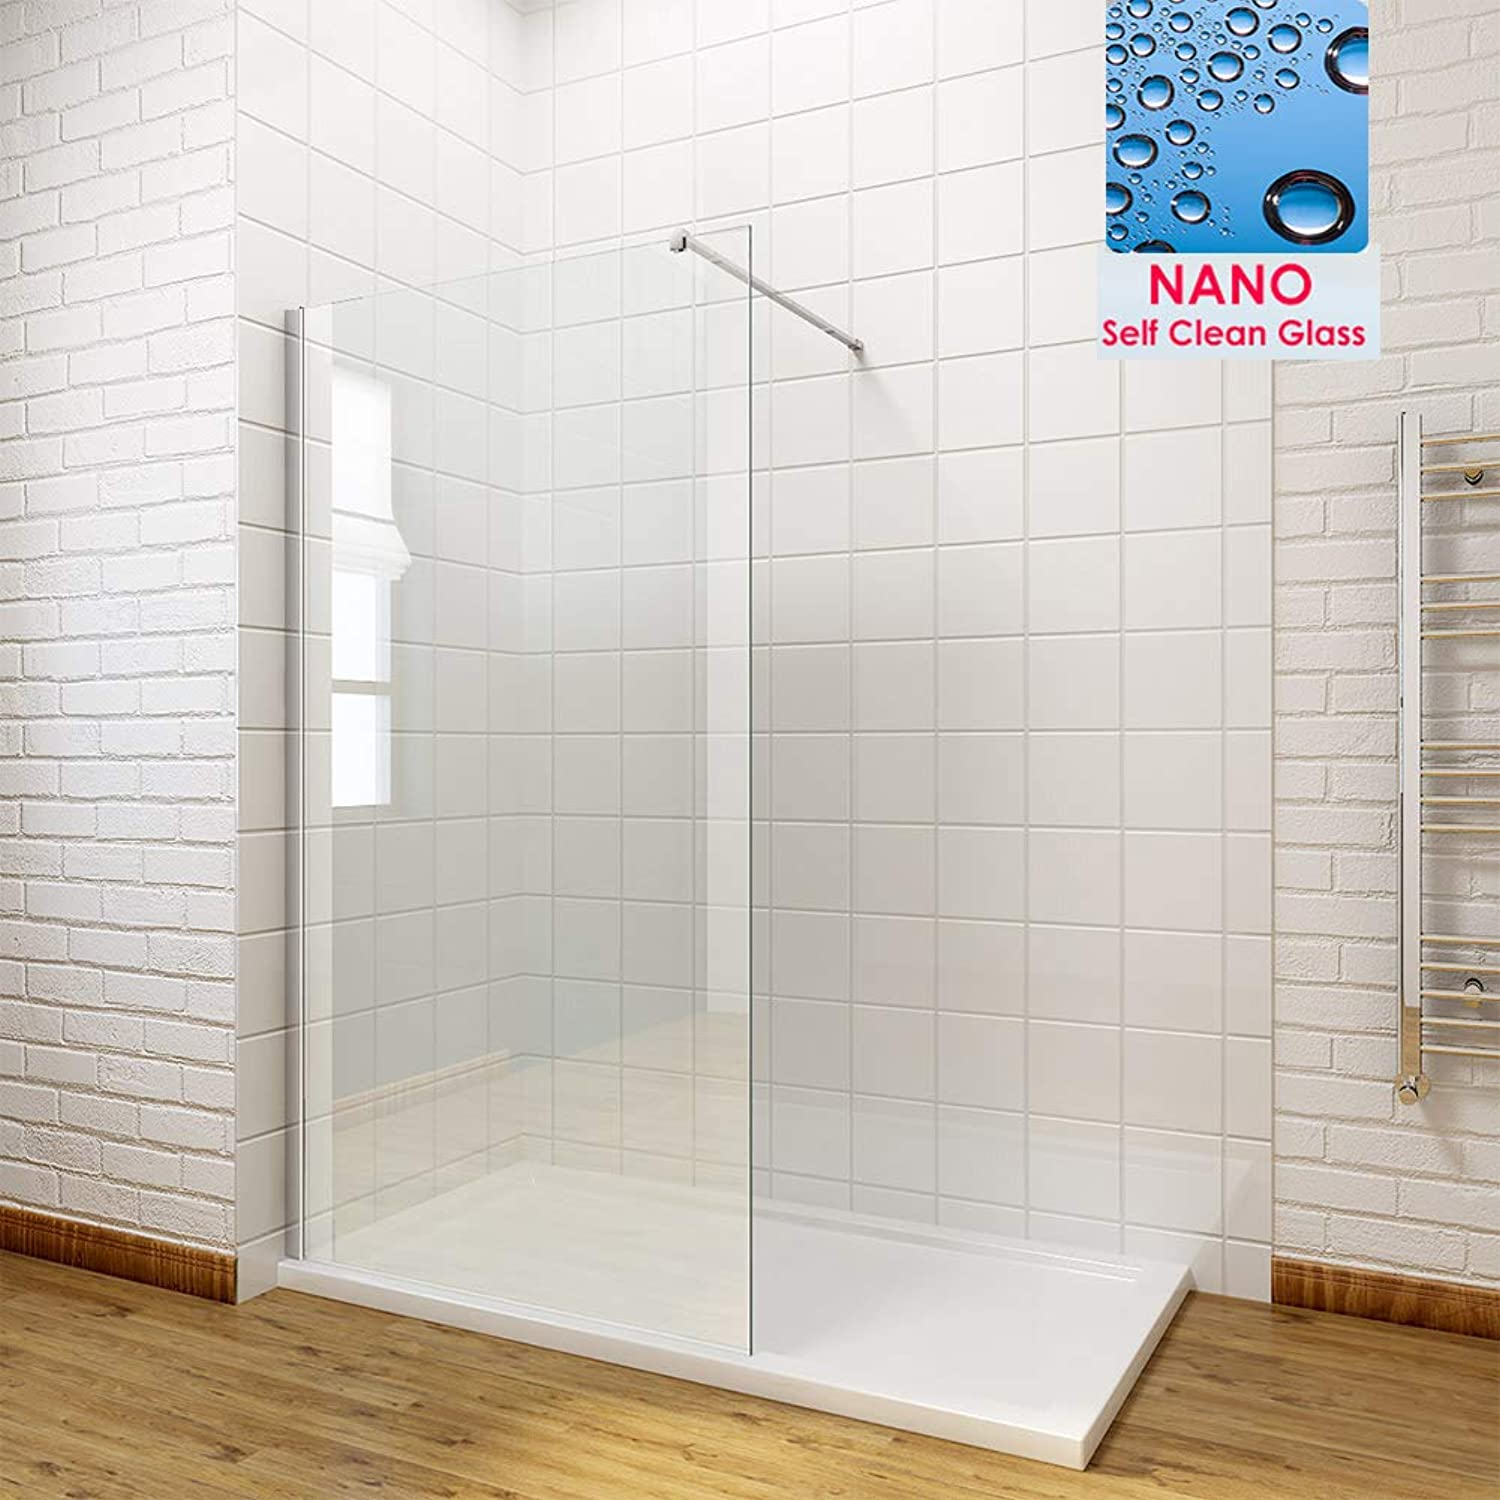 700mm Wet Room Shower Screen Panel 8mm Easy Clean Glass Walk in Shower Enclosure